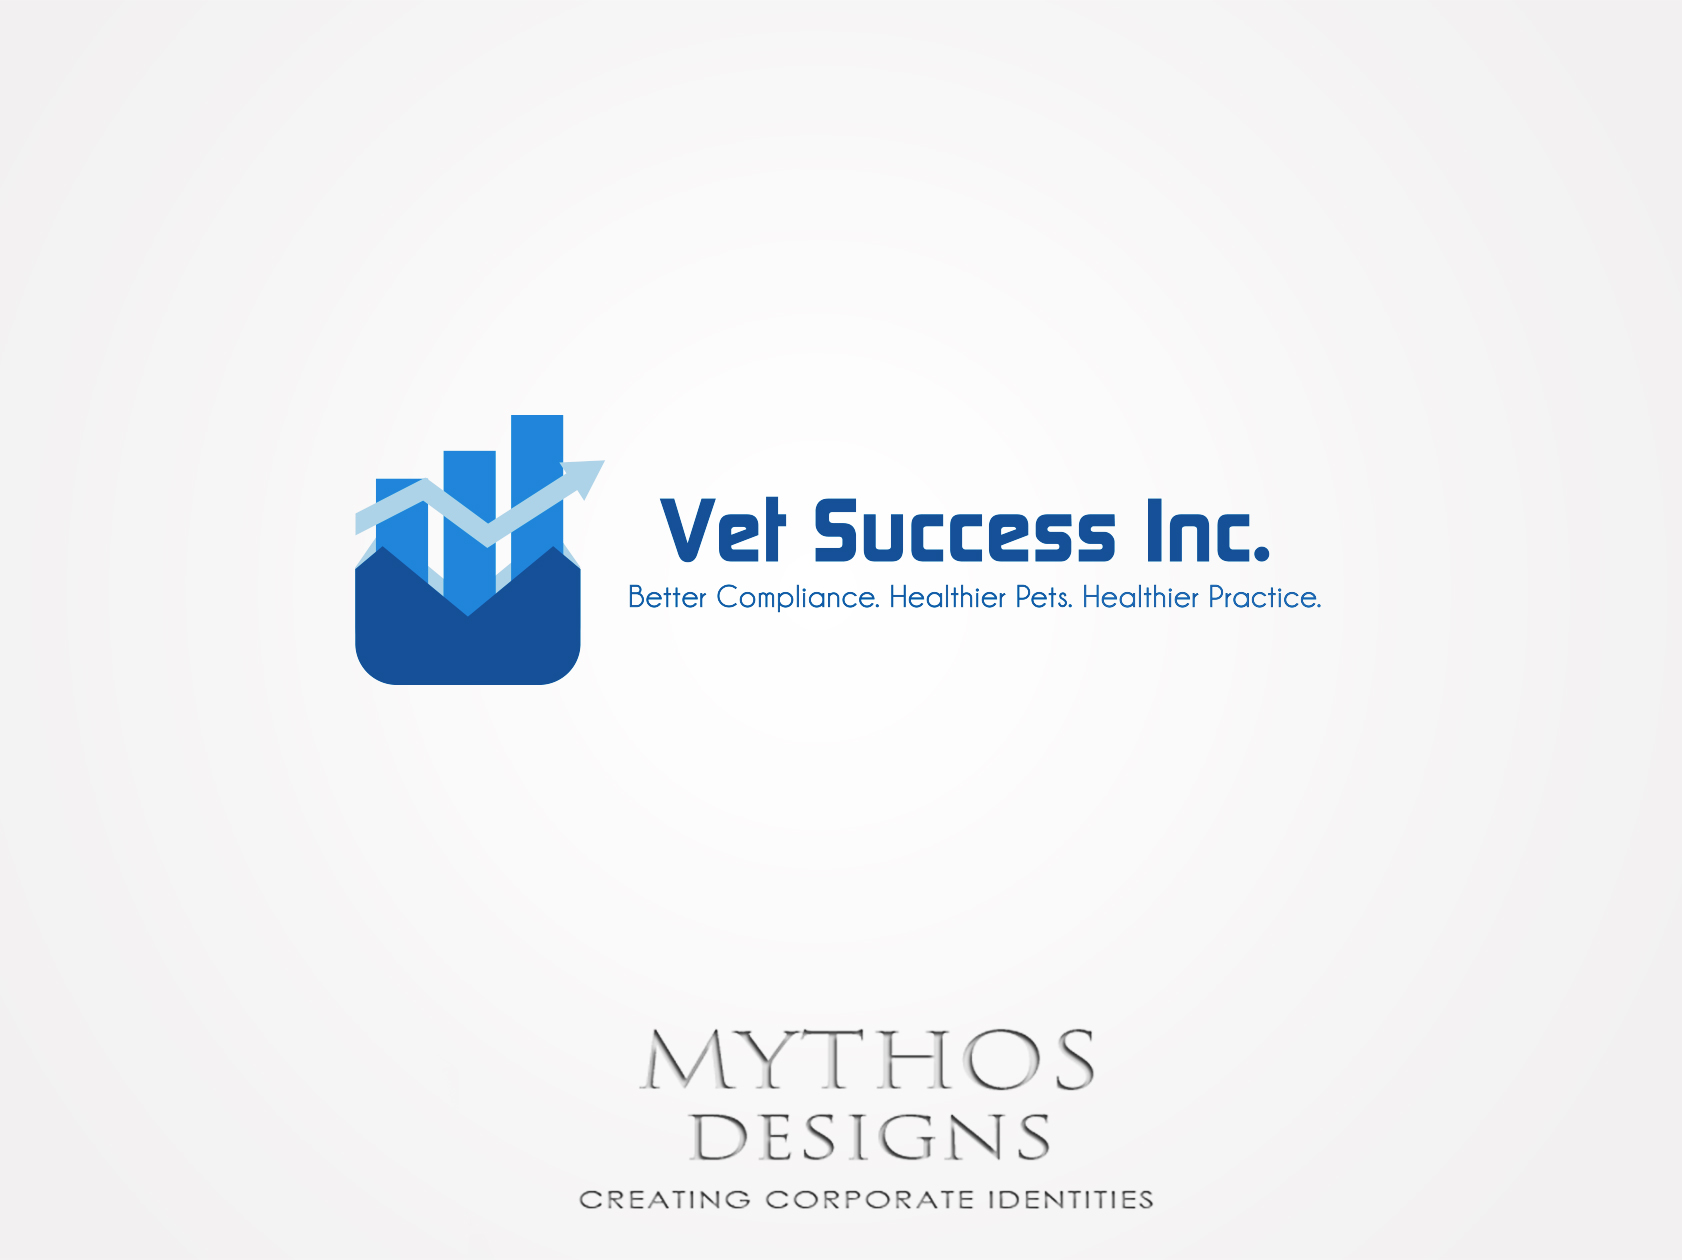 Logo Design by Mythos Designs - Entry No. 120 in the Logo Design Contest Imaginative Logo Design for Vet Success Inc..